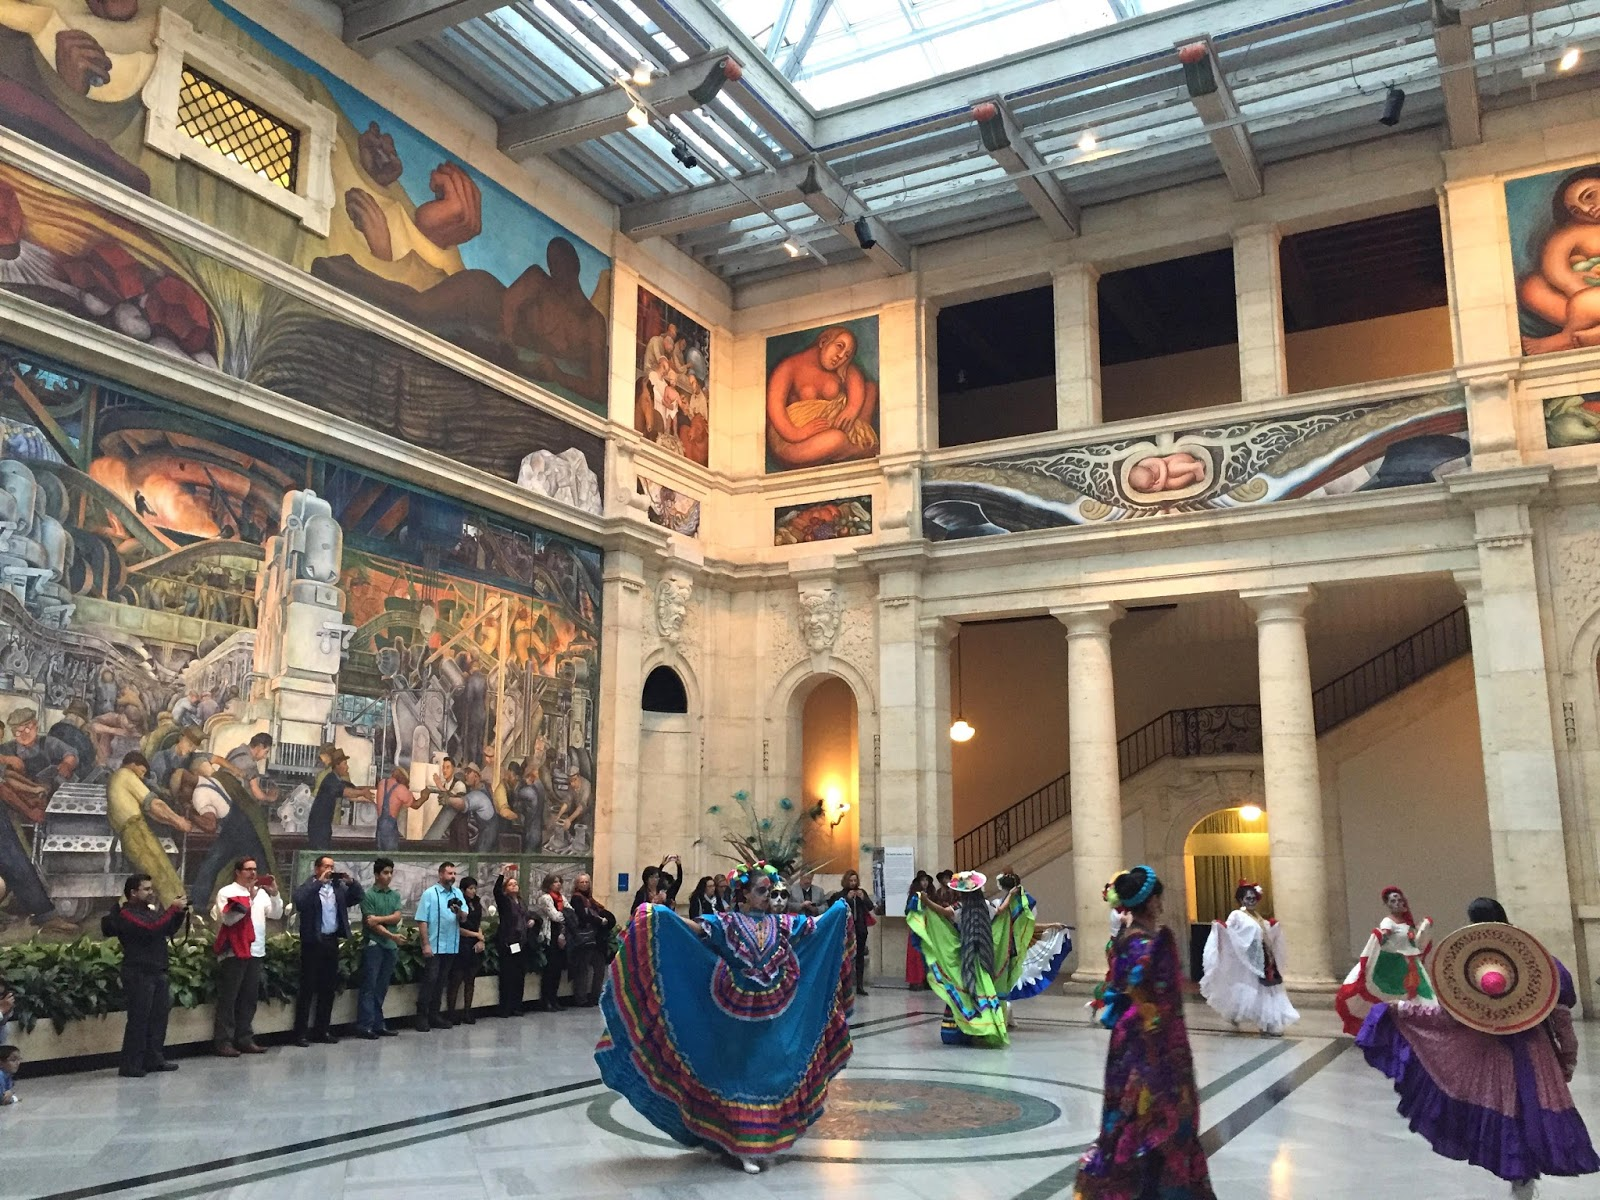 Entertaining views from cincinnati 30 americans at for Diego rivera mural chicago